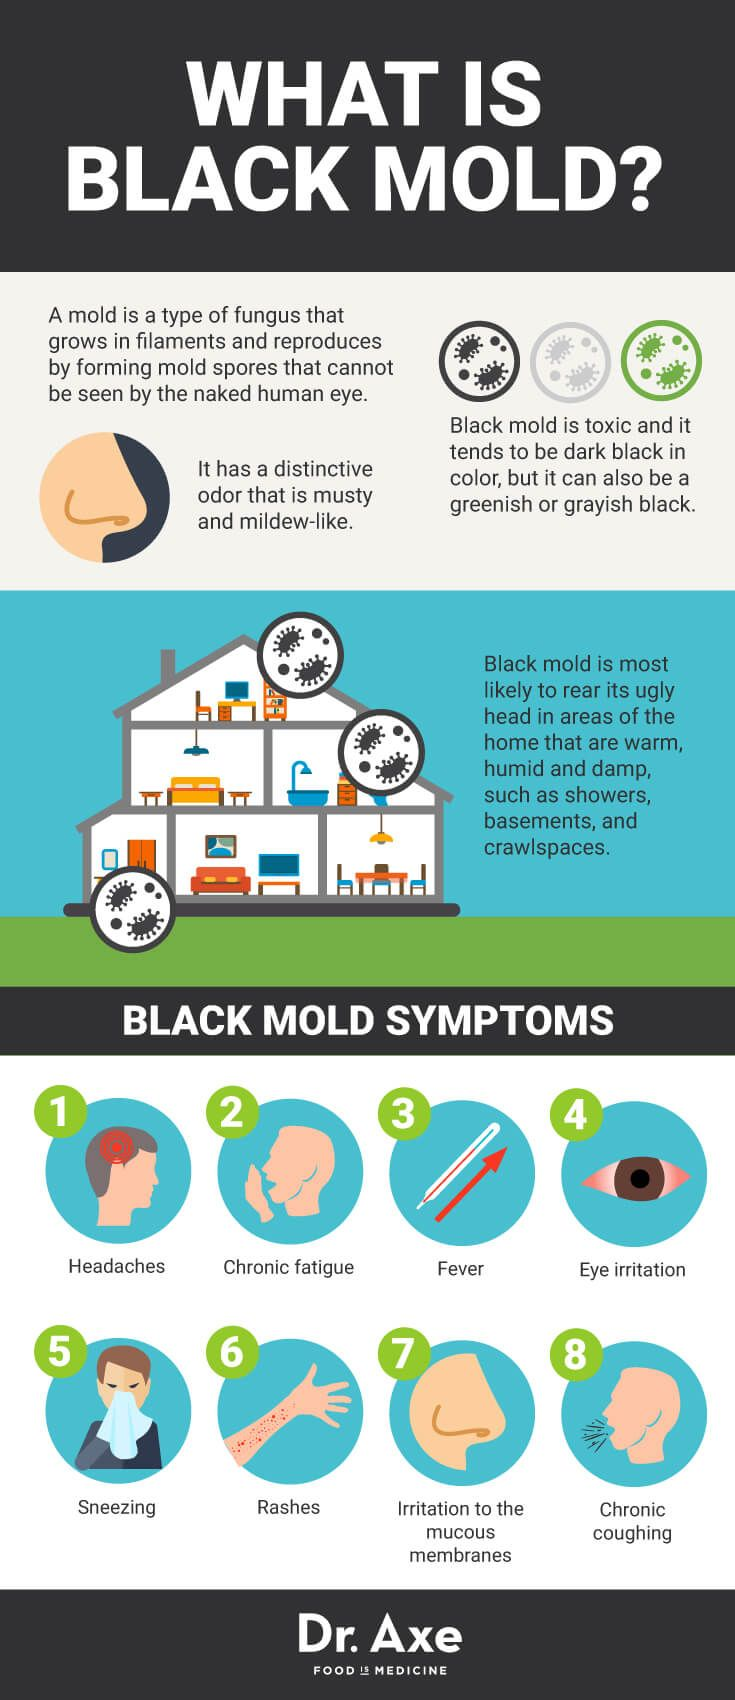 Black Mold Exposure And Poisoning Can Cause A Wide Range Of Health Problems Some Symptoms Actually Be Really Serious